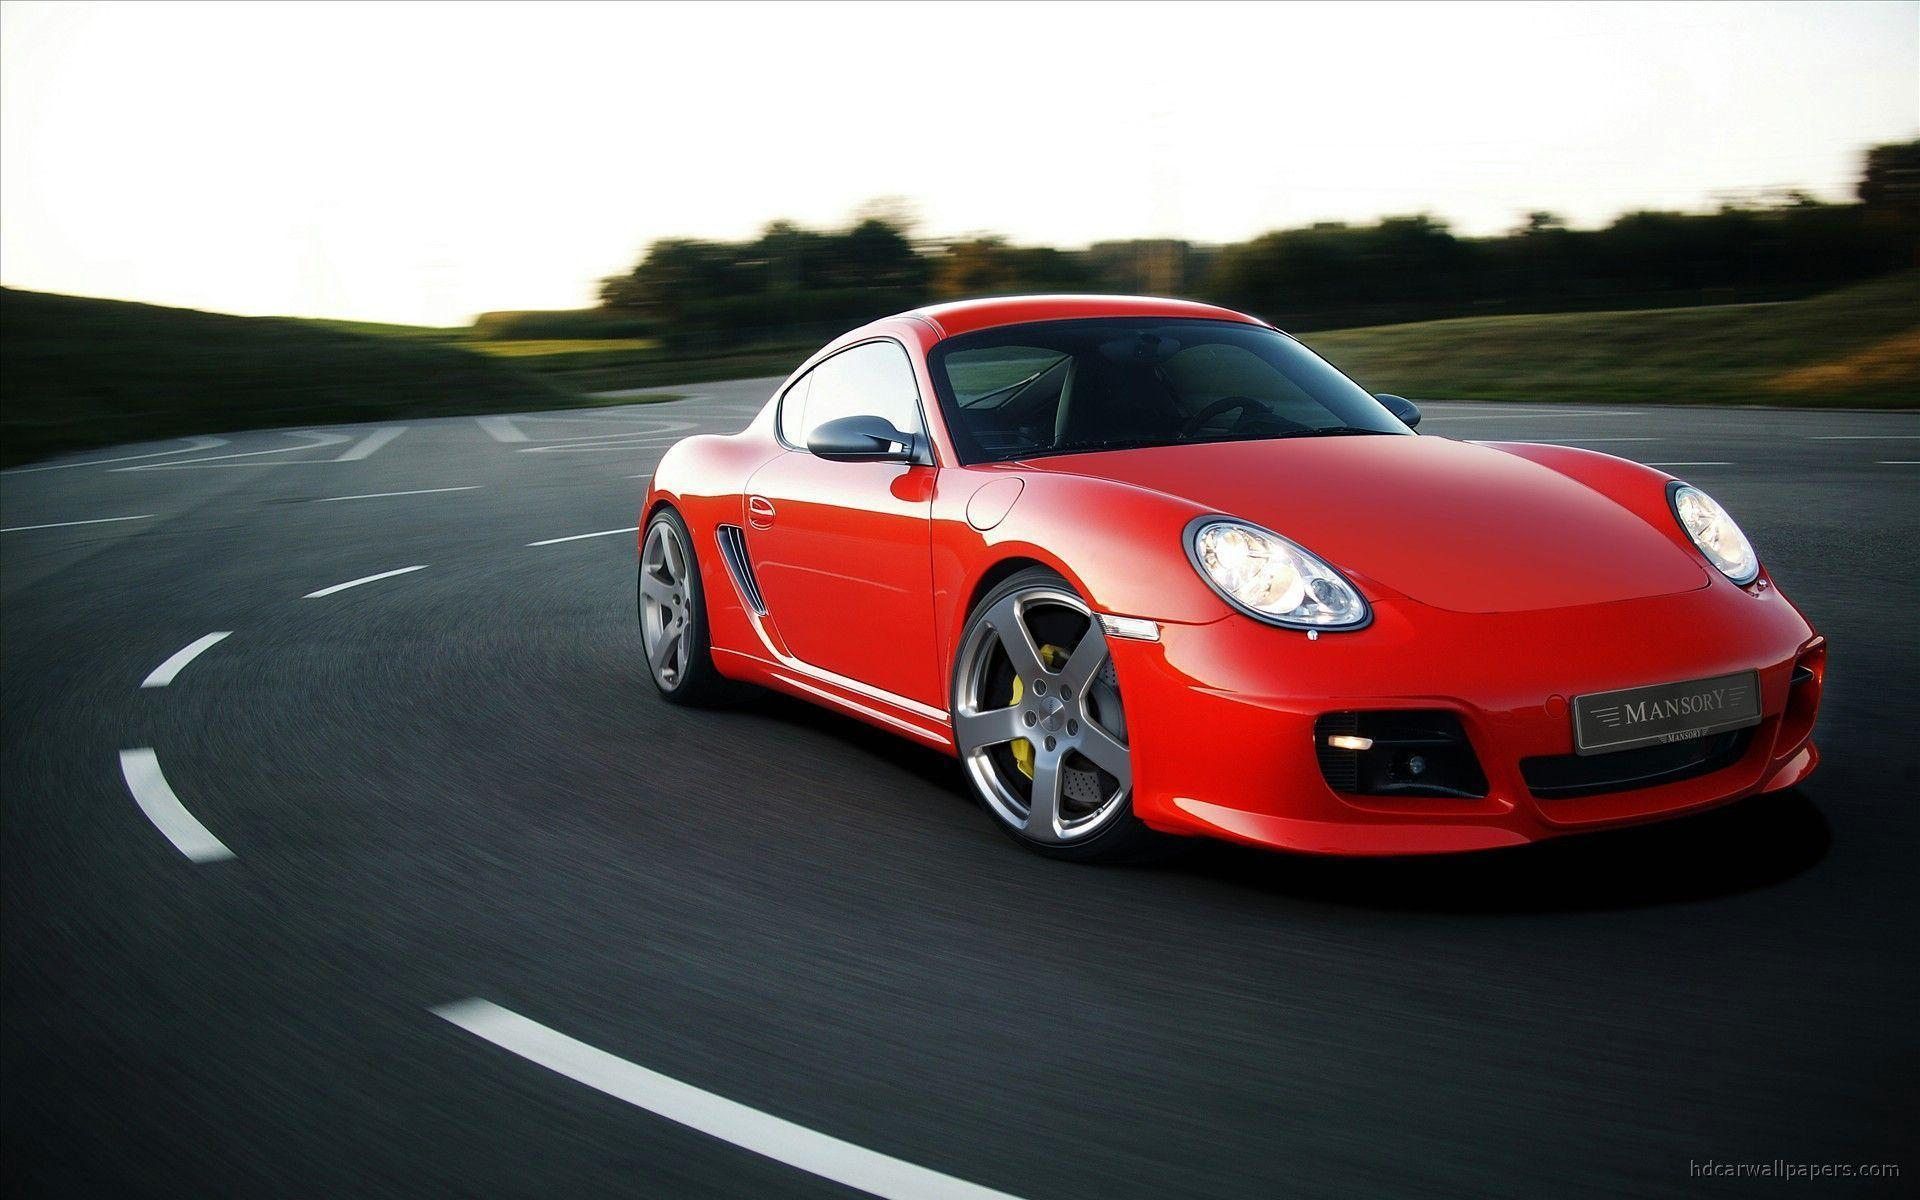 Porsche Cayman Wallpapers - Full HD wallpaper search